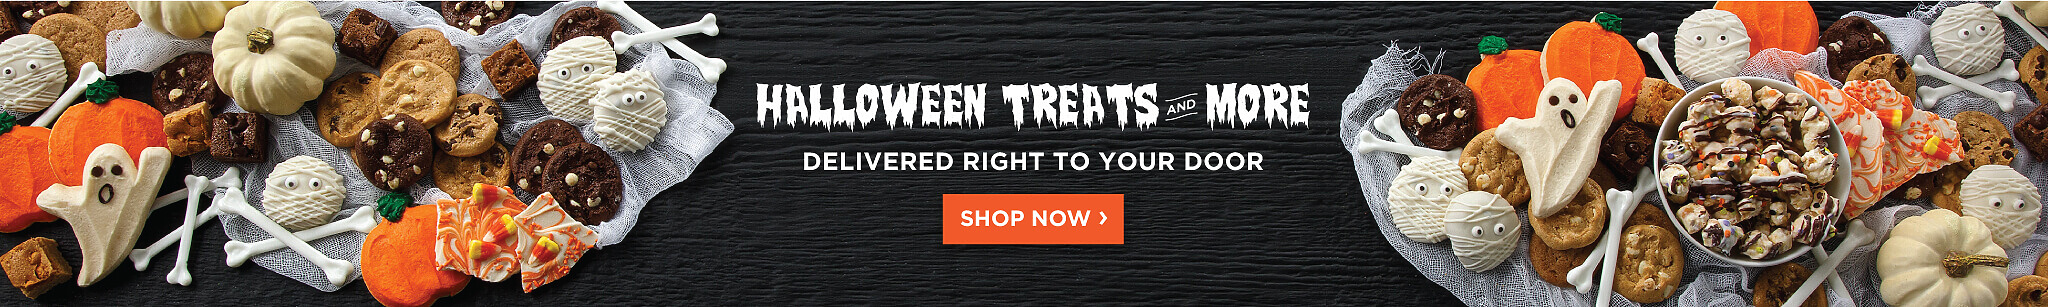 Halloween Treats And More Delivered Right To Your Door. Shop Now